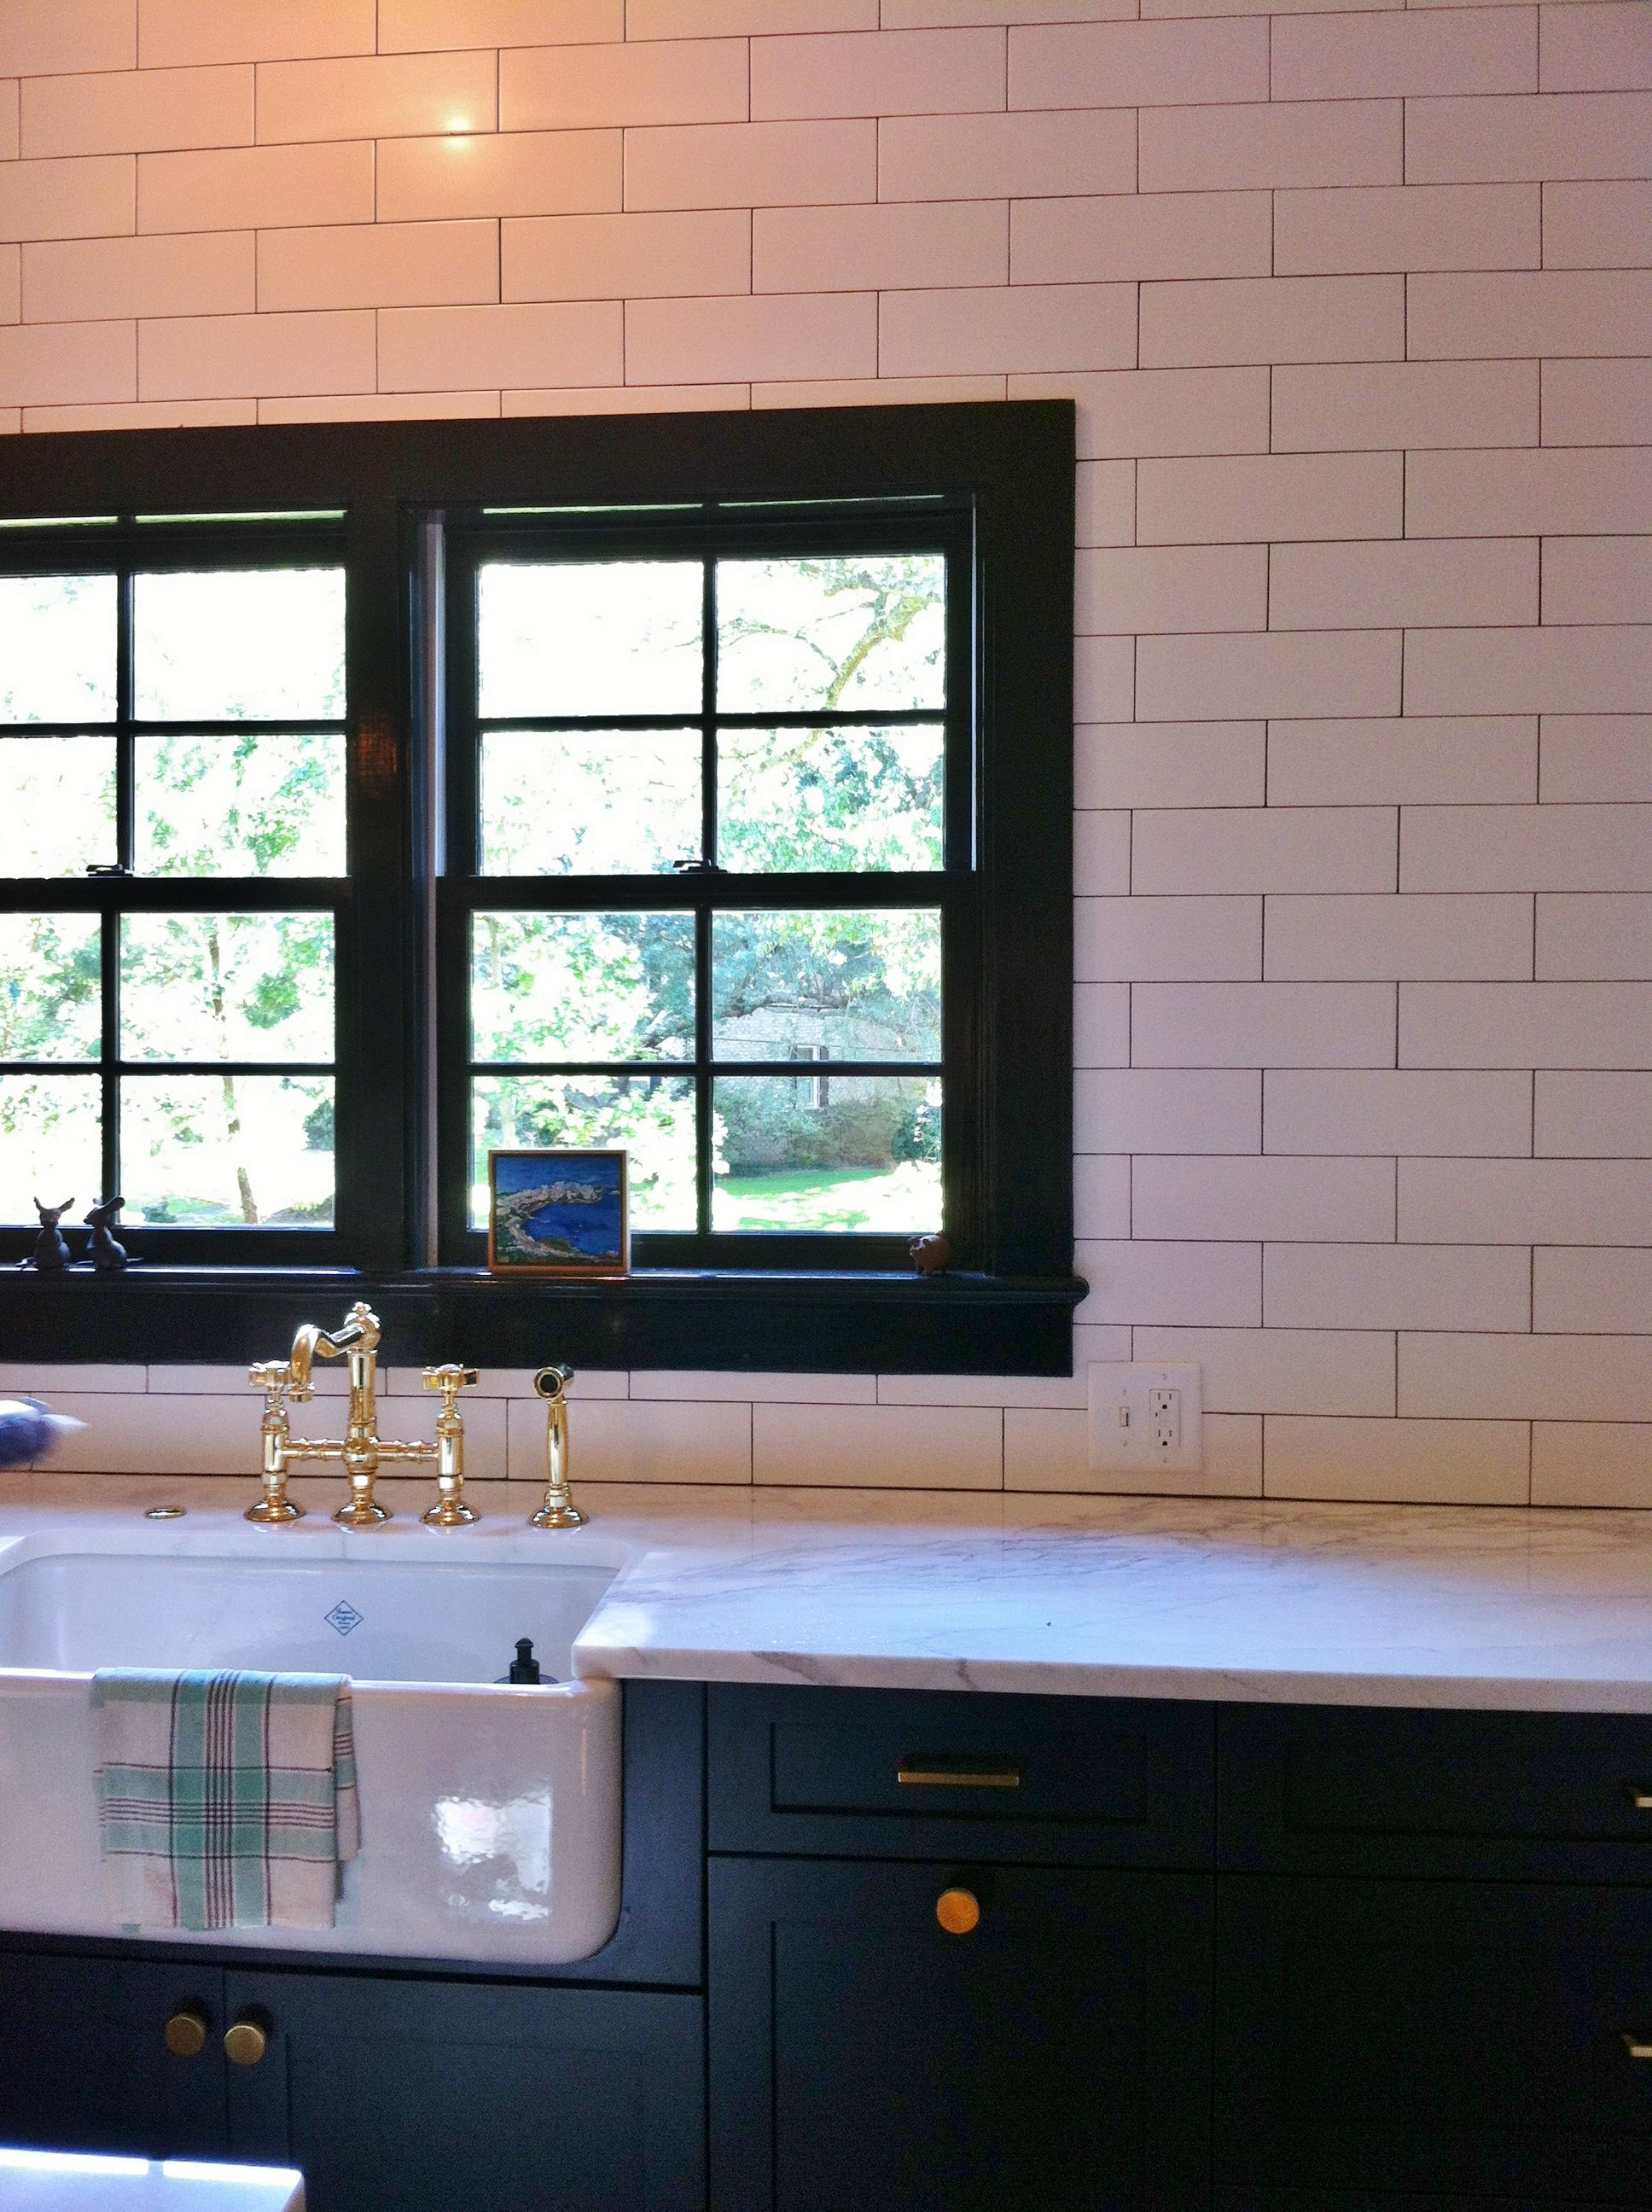 Ice White Subway Tile 4x8 Used On This Kitchen Backsplash On James